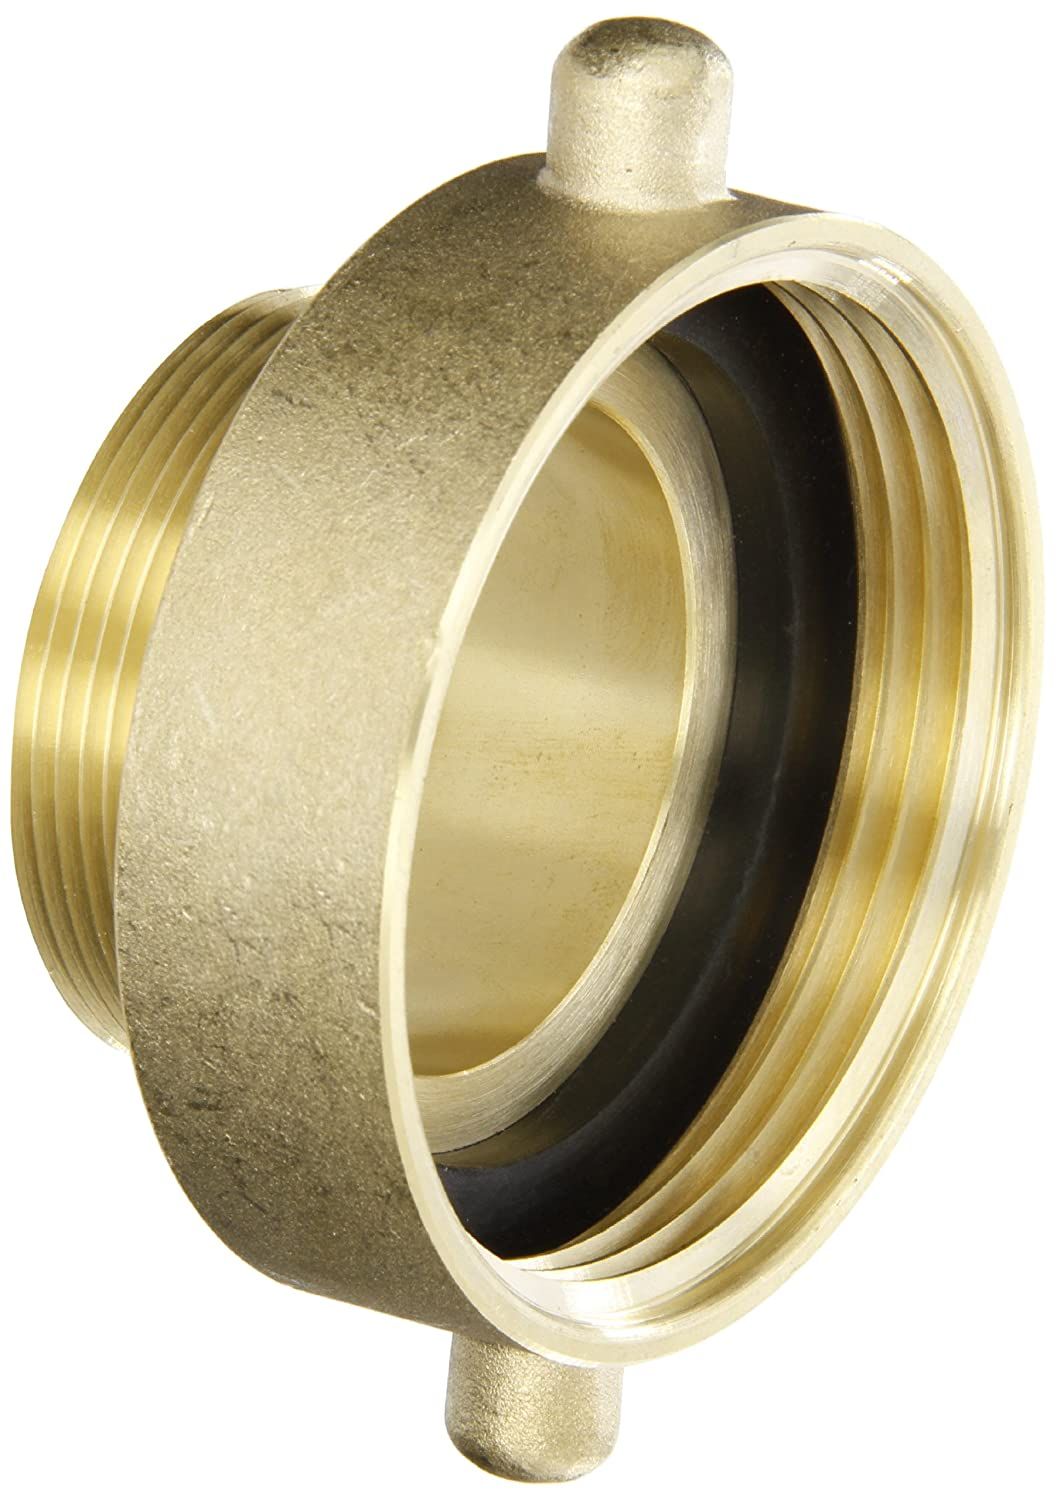 Dixon Valve HA2520T Brass Fire Equipment, Hydrant Adapter with Pin Lug, 2-1/2' NST (NH) Female x 2' NPT Male 2-1/2 NST (NH) Female x 2 NPT Male Dixon Valve & Coupling